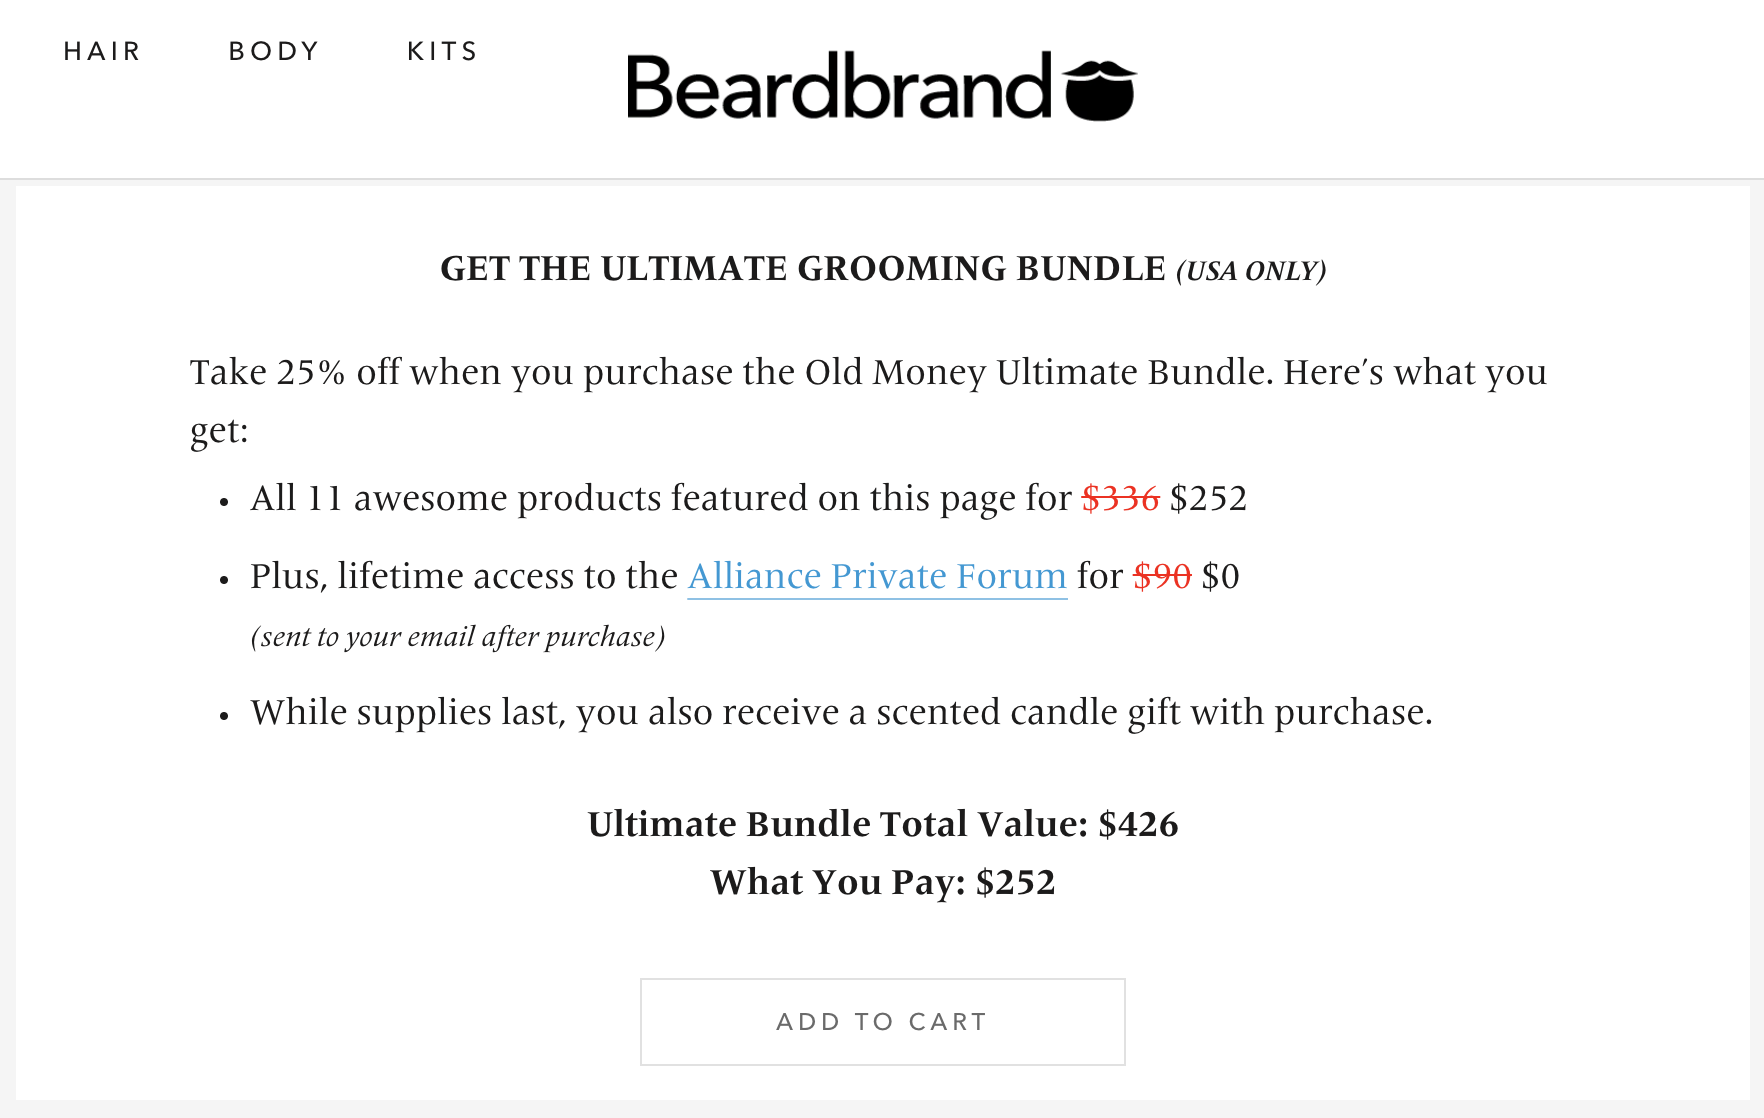 beardbrand ultimate grooming bundle page with add-to-cart button